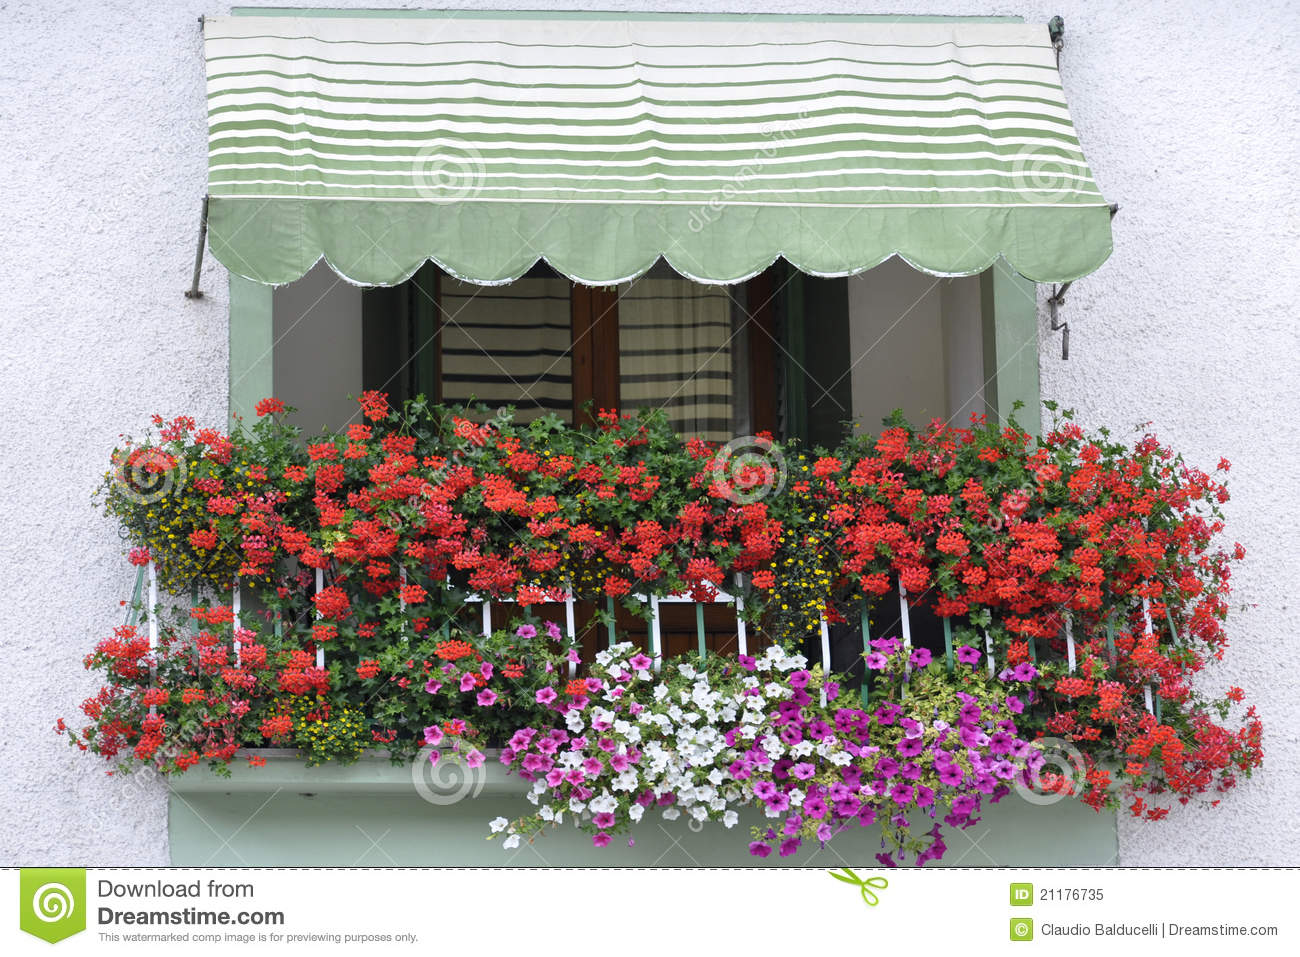 Colorful balcony with flowers in Italy